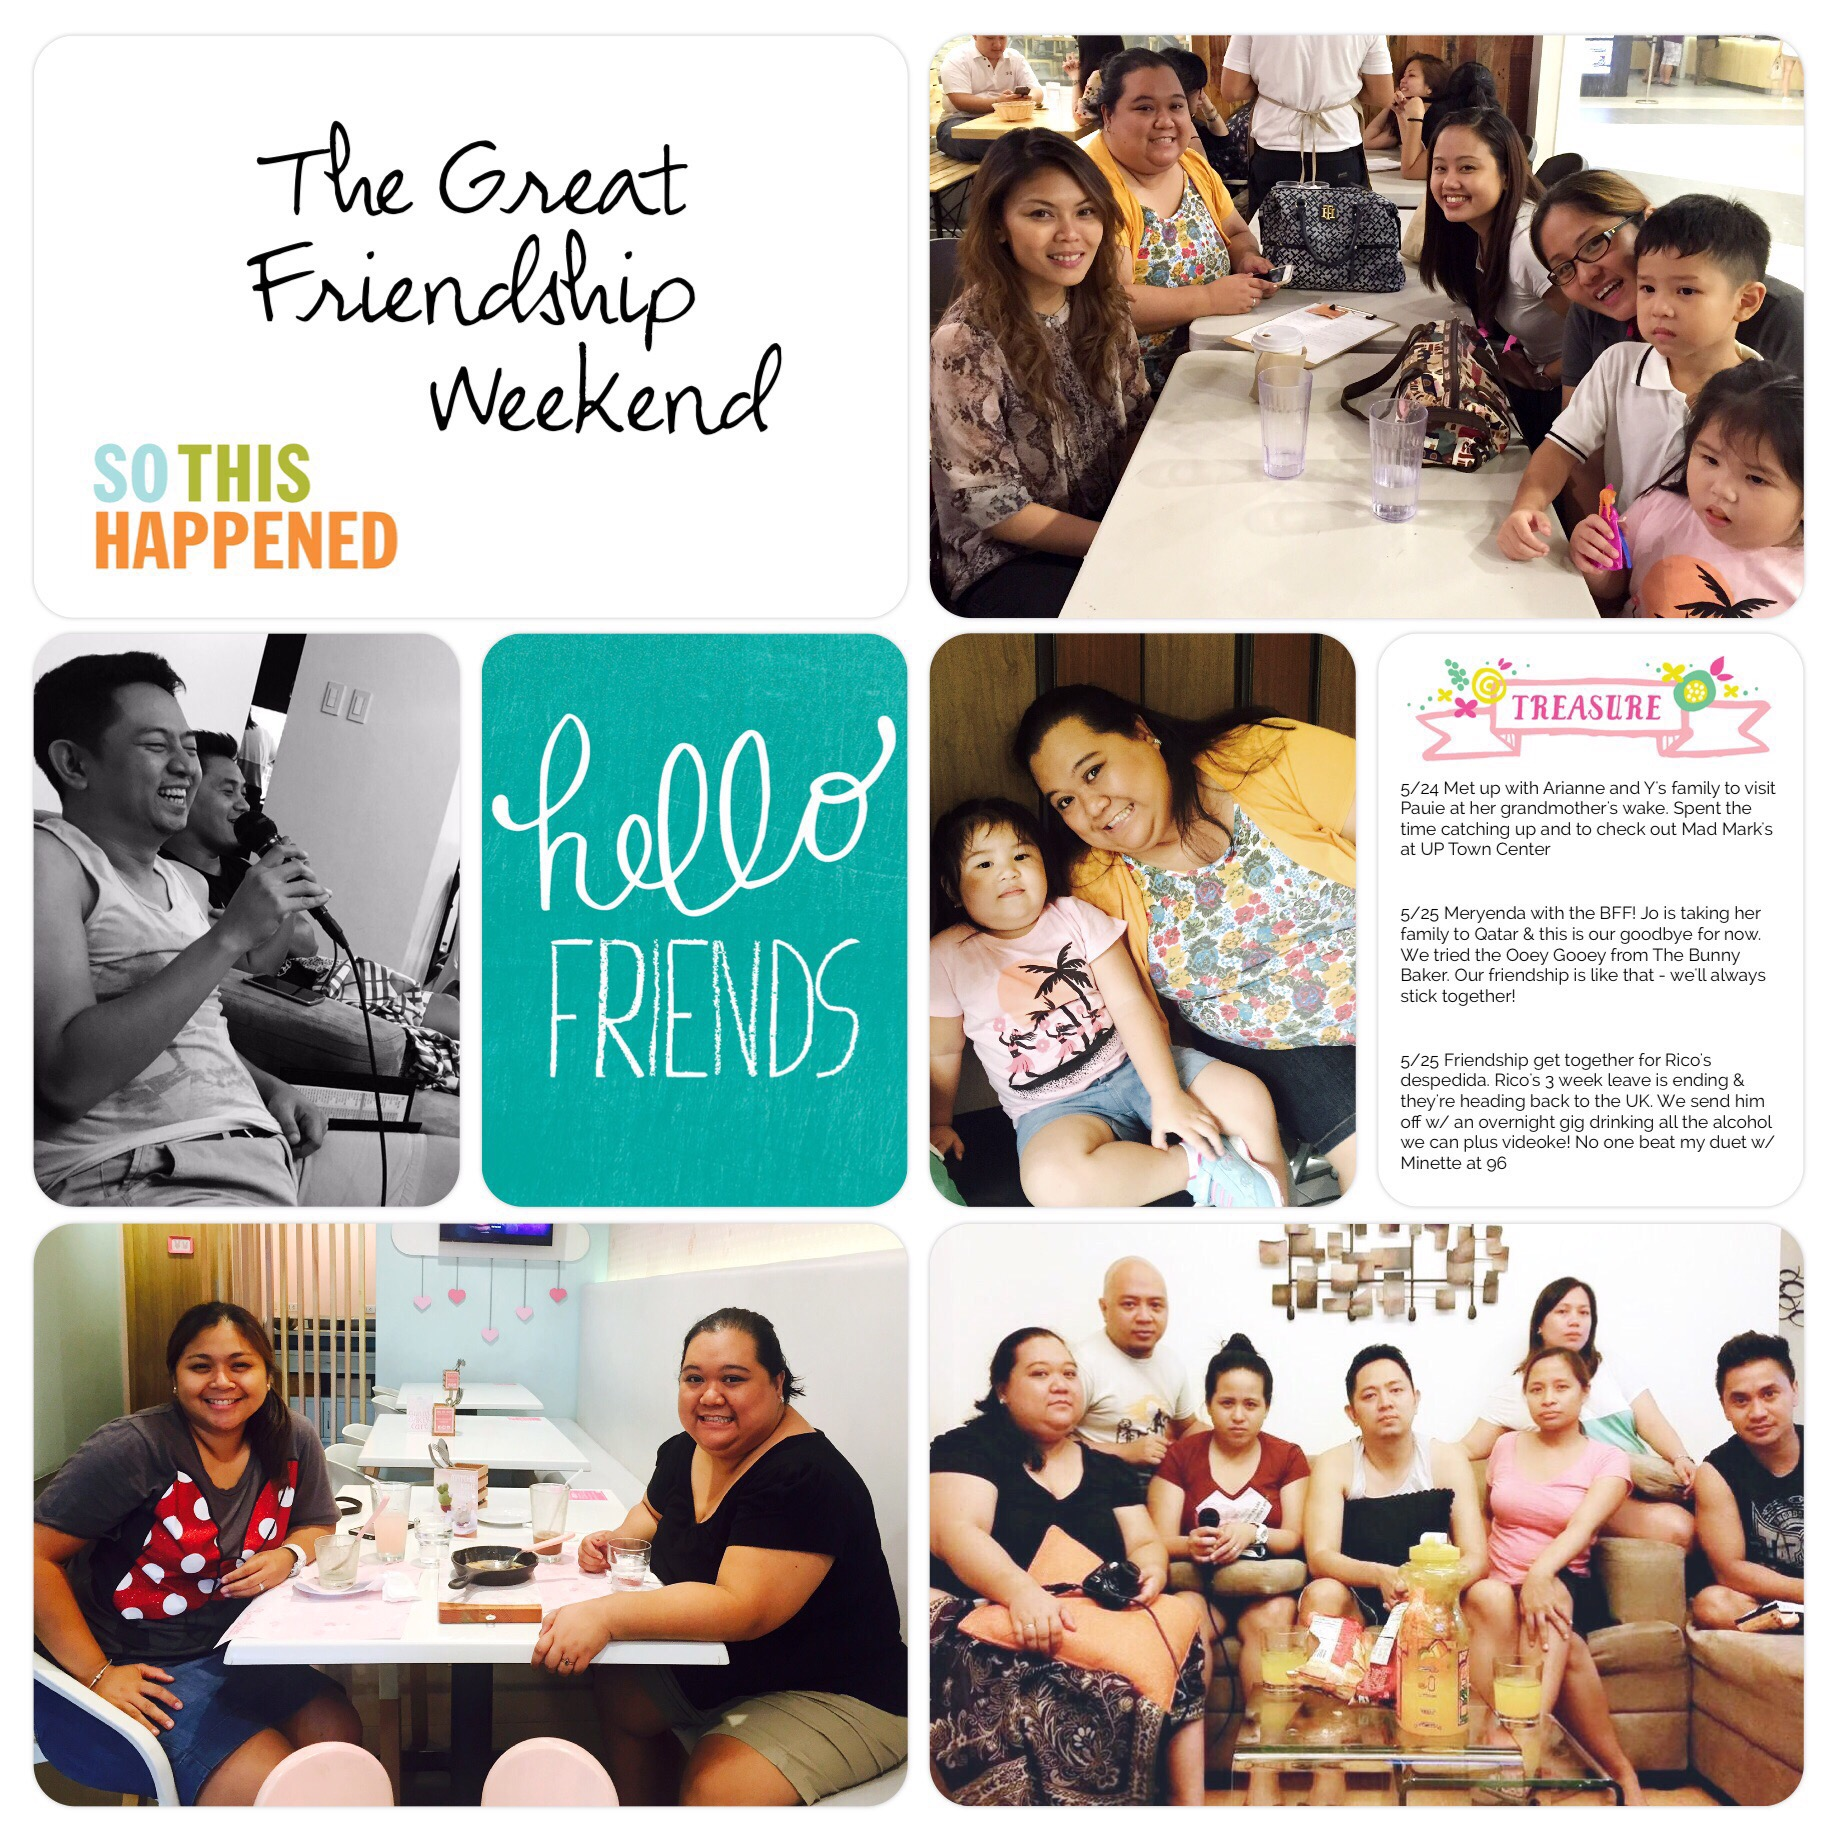 Project Life page - The Great Friendship Weekend